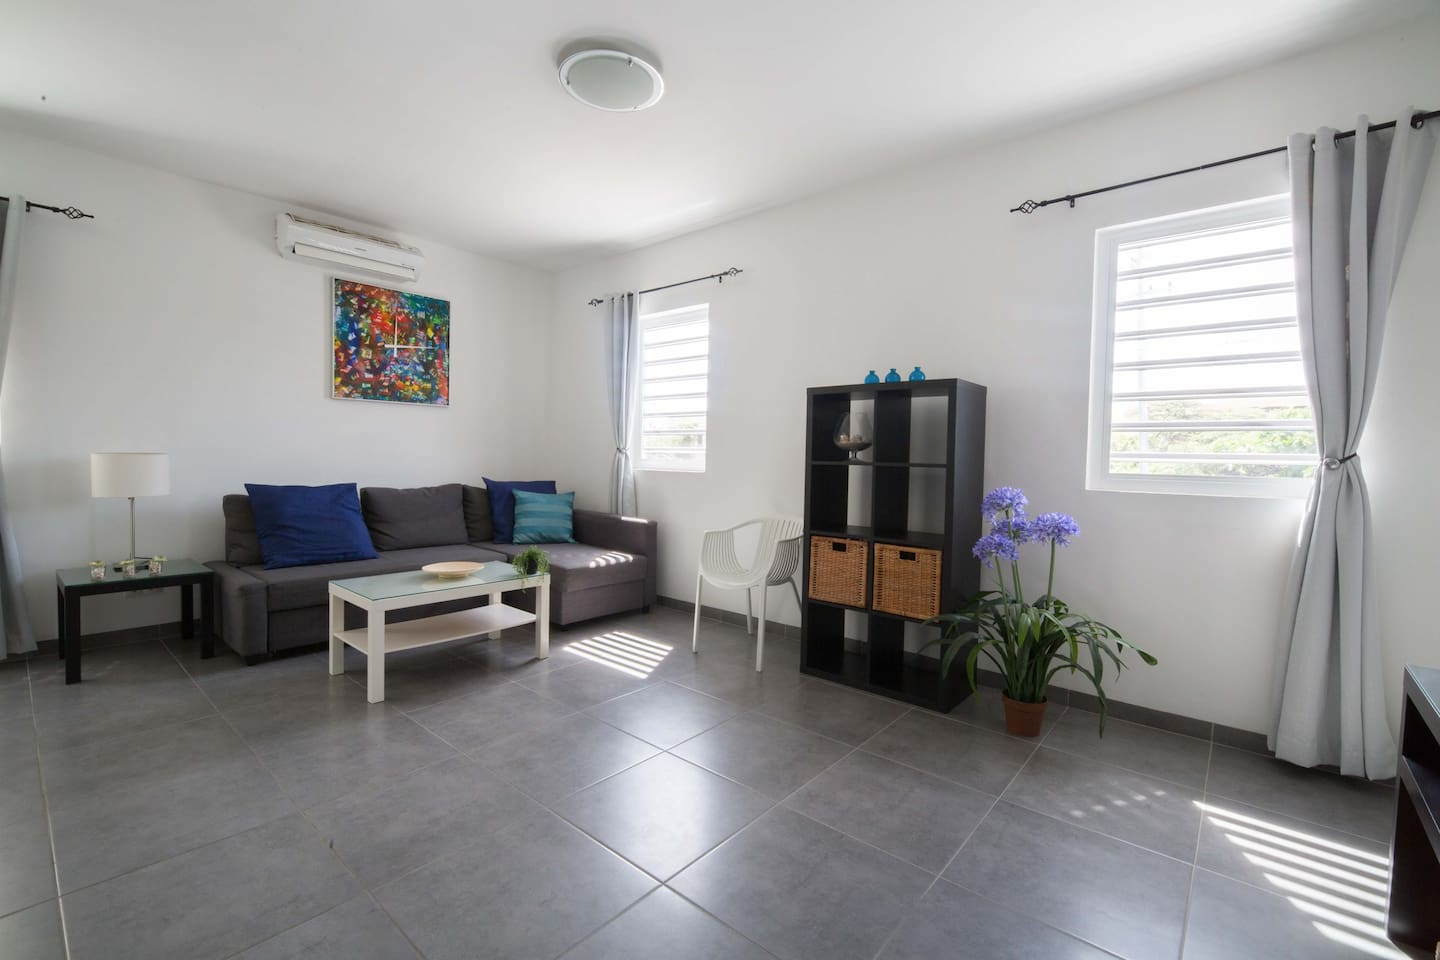 Modernly furnished, new and clean apartment